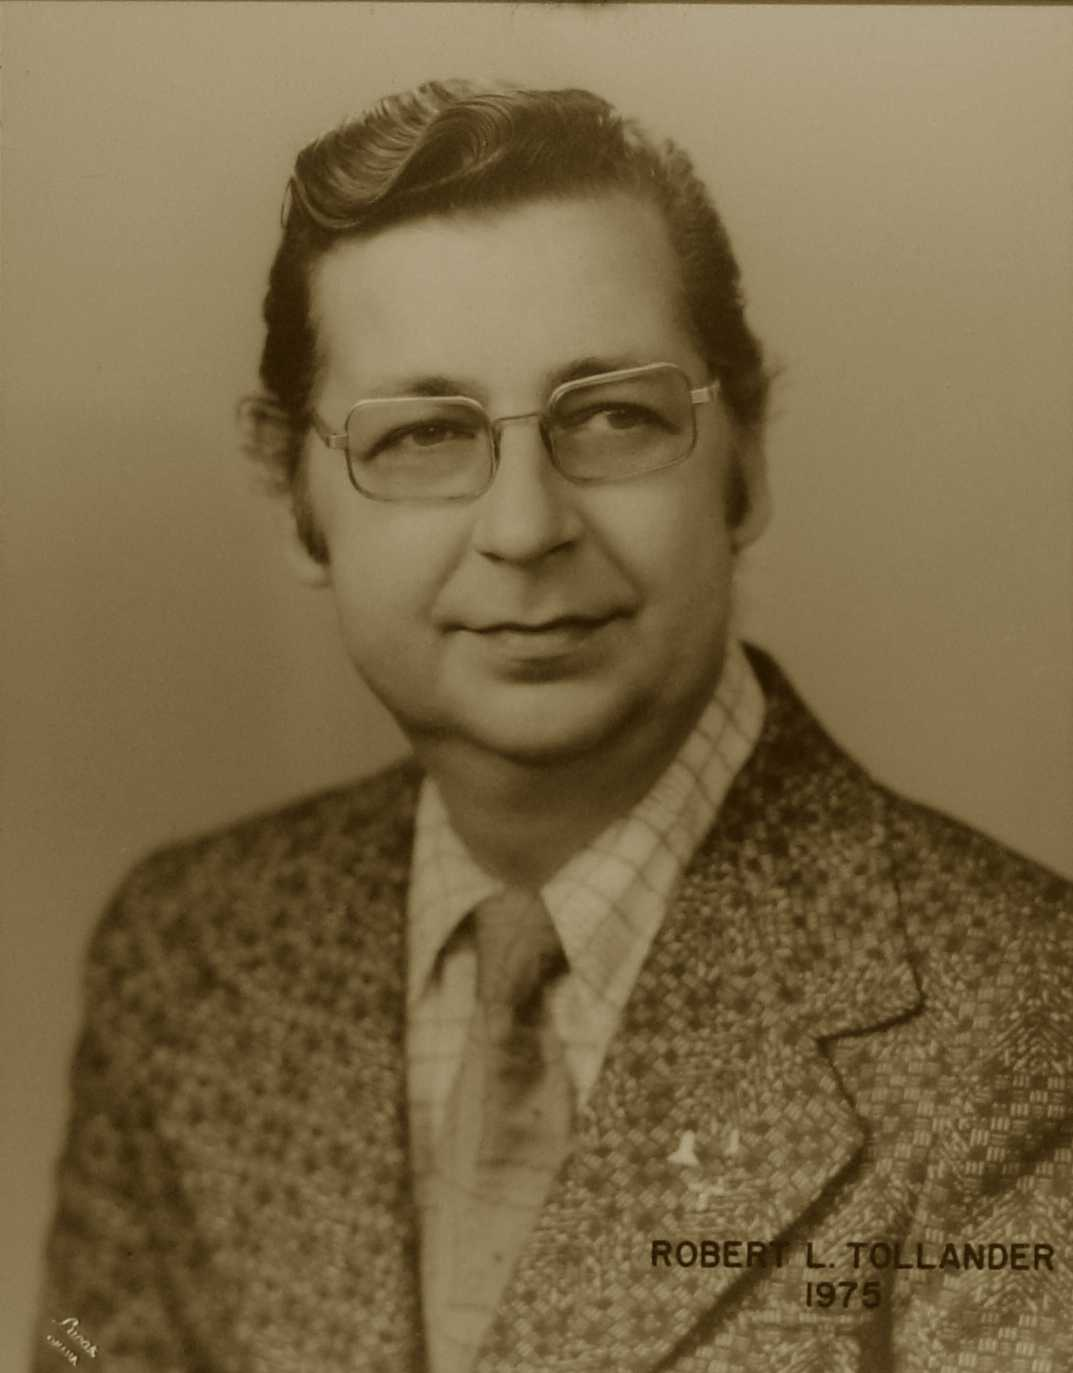 Robert L. Tollander, 1975